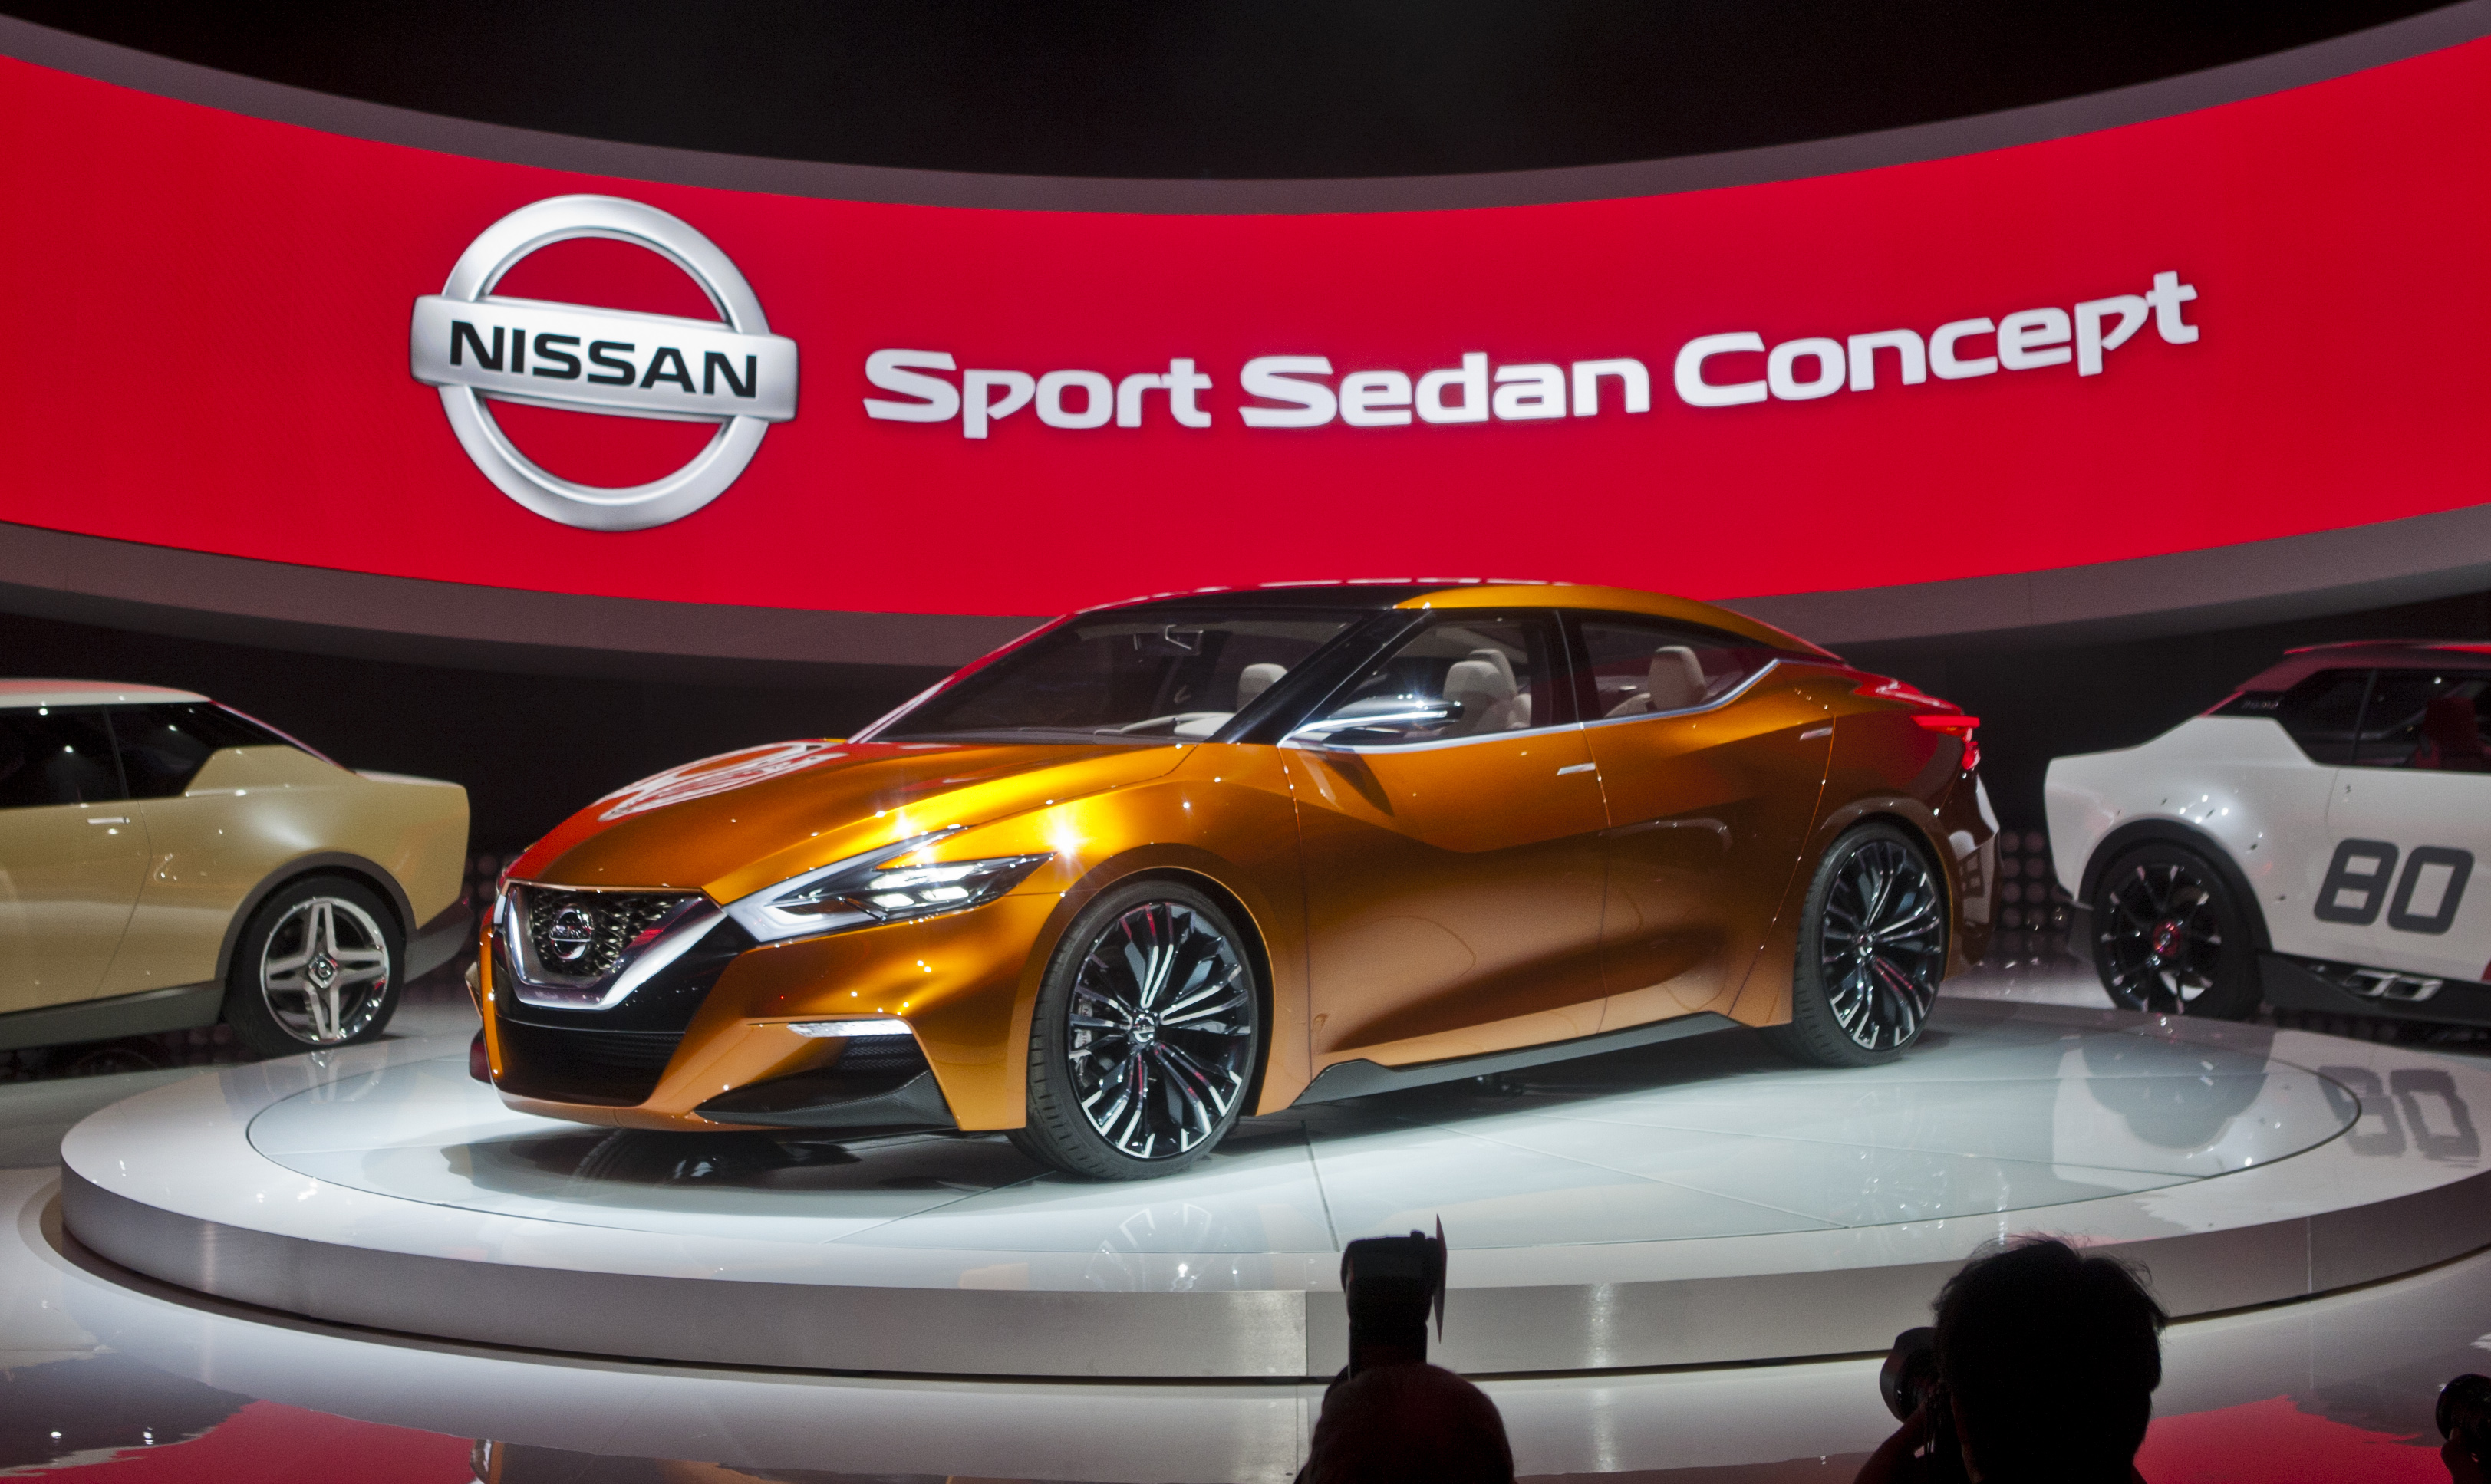 Nissan revelou o Sports Sedan no Salão de Detroit 2014